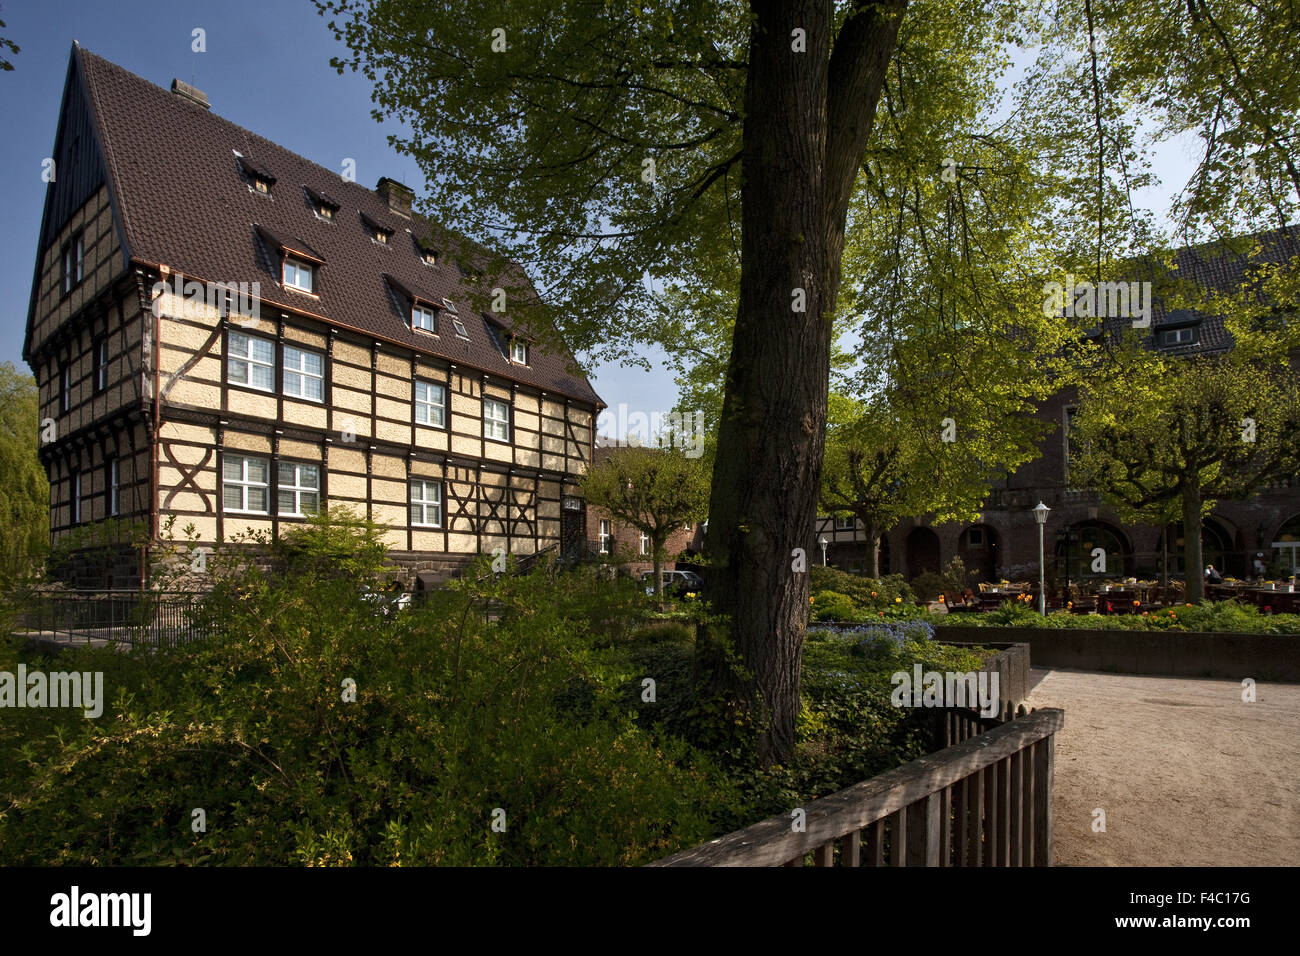 Wittringen castle, Gladbeck, Germany - Stock Image